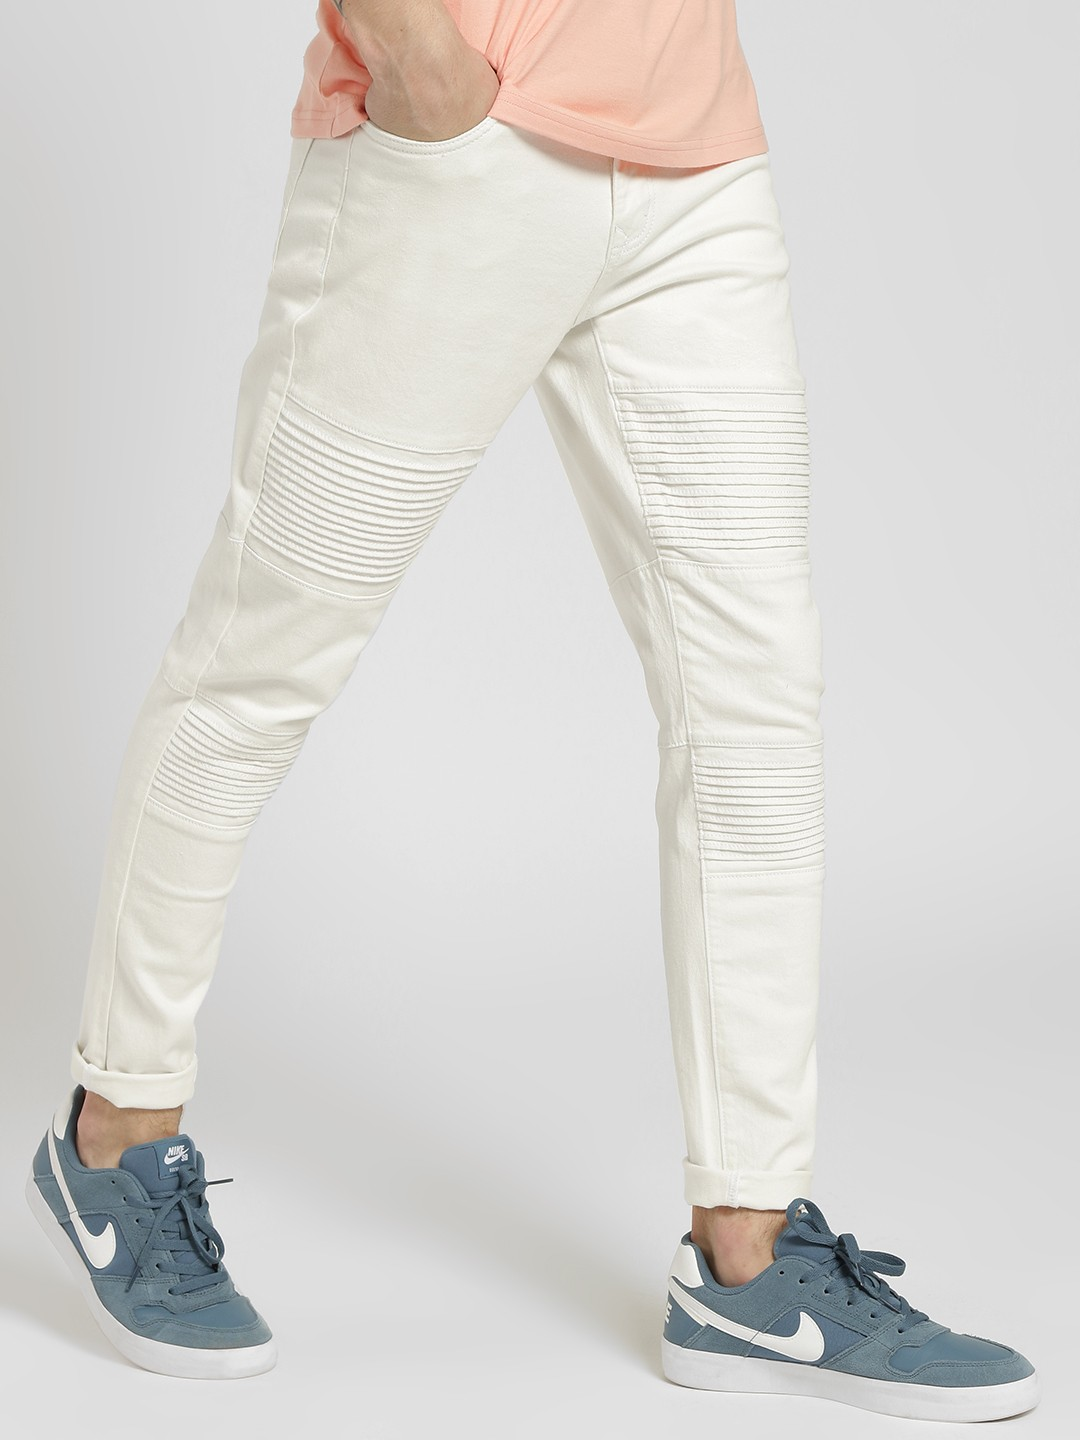 K Denim White KOOVS Biker Panel Skinny Jeans 1